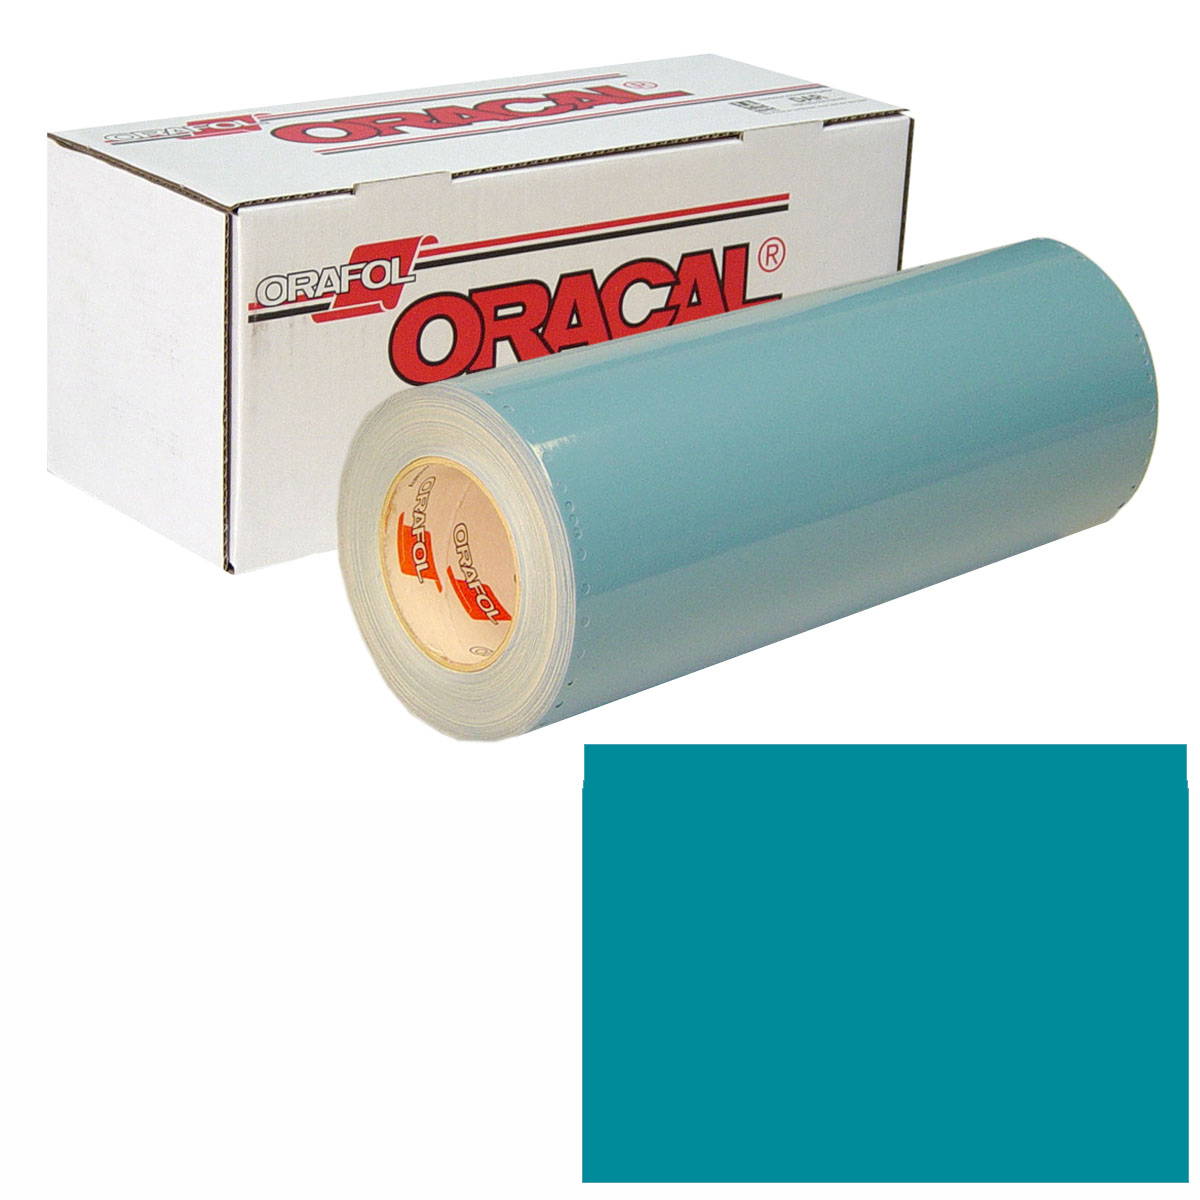 ORACAL 751 15In X 50Yd 066 Turquoise Blue